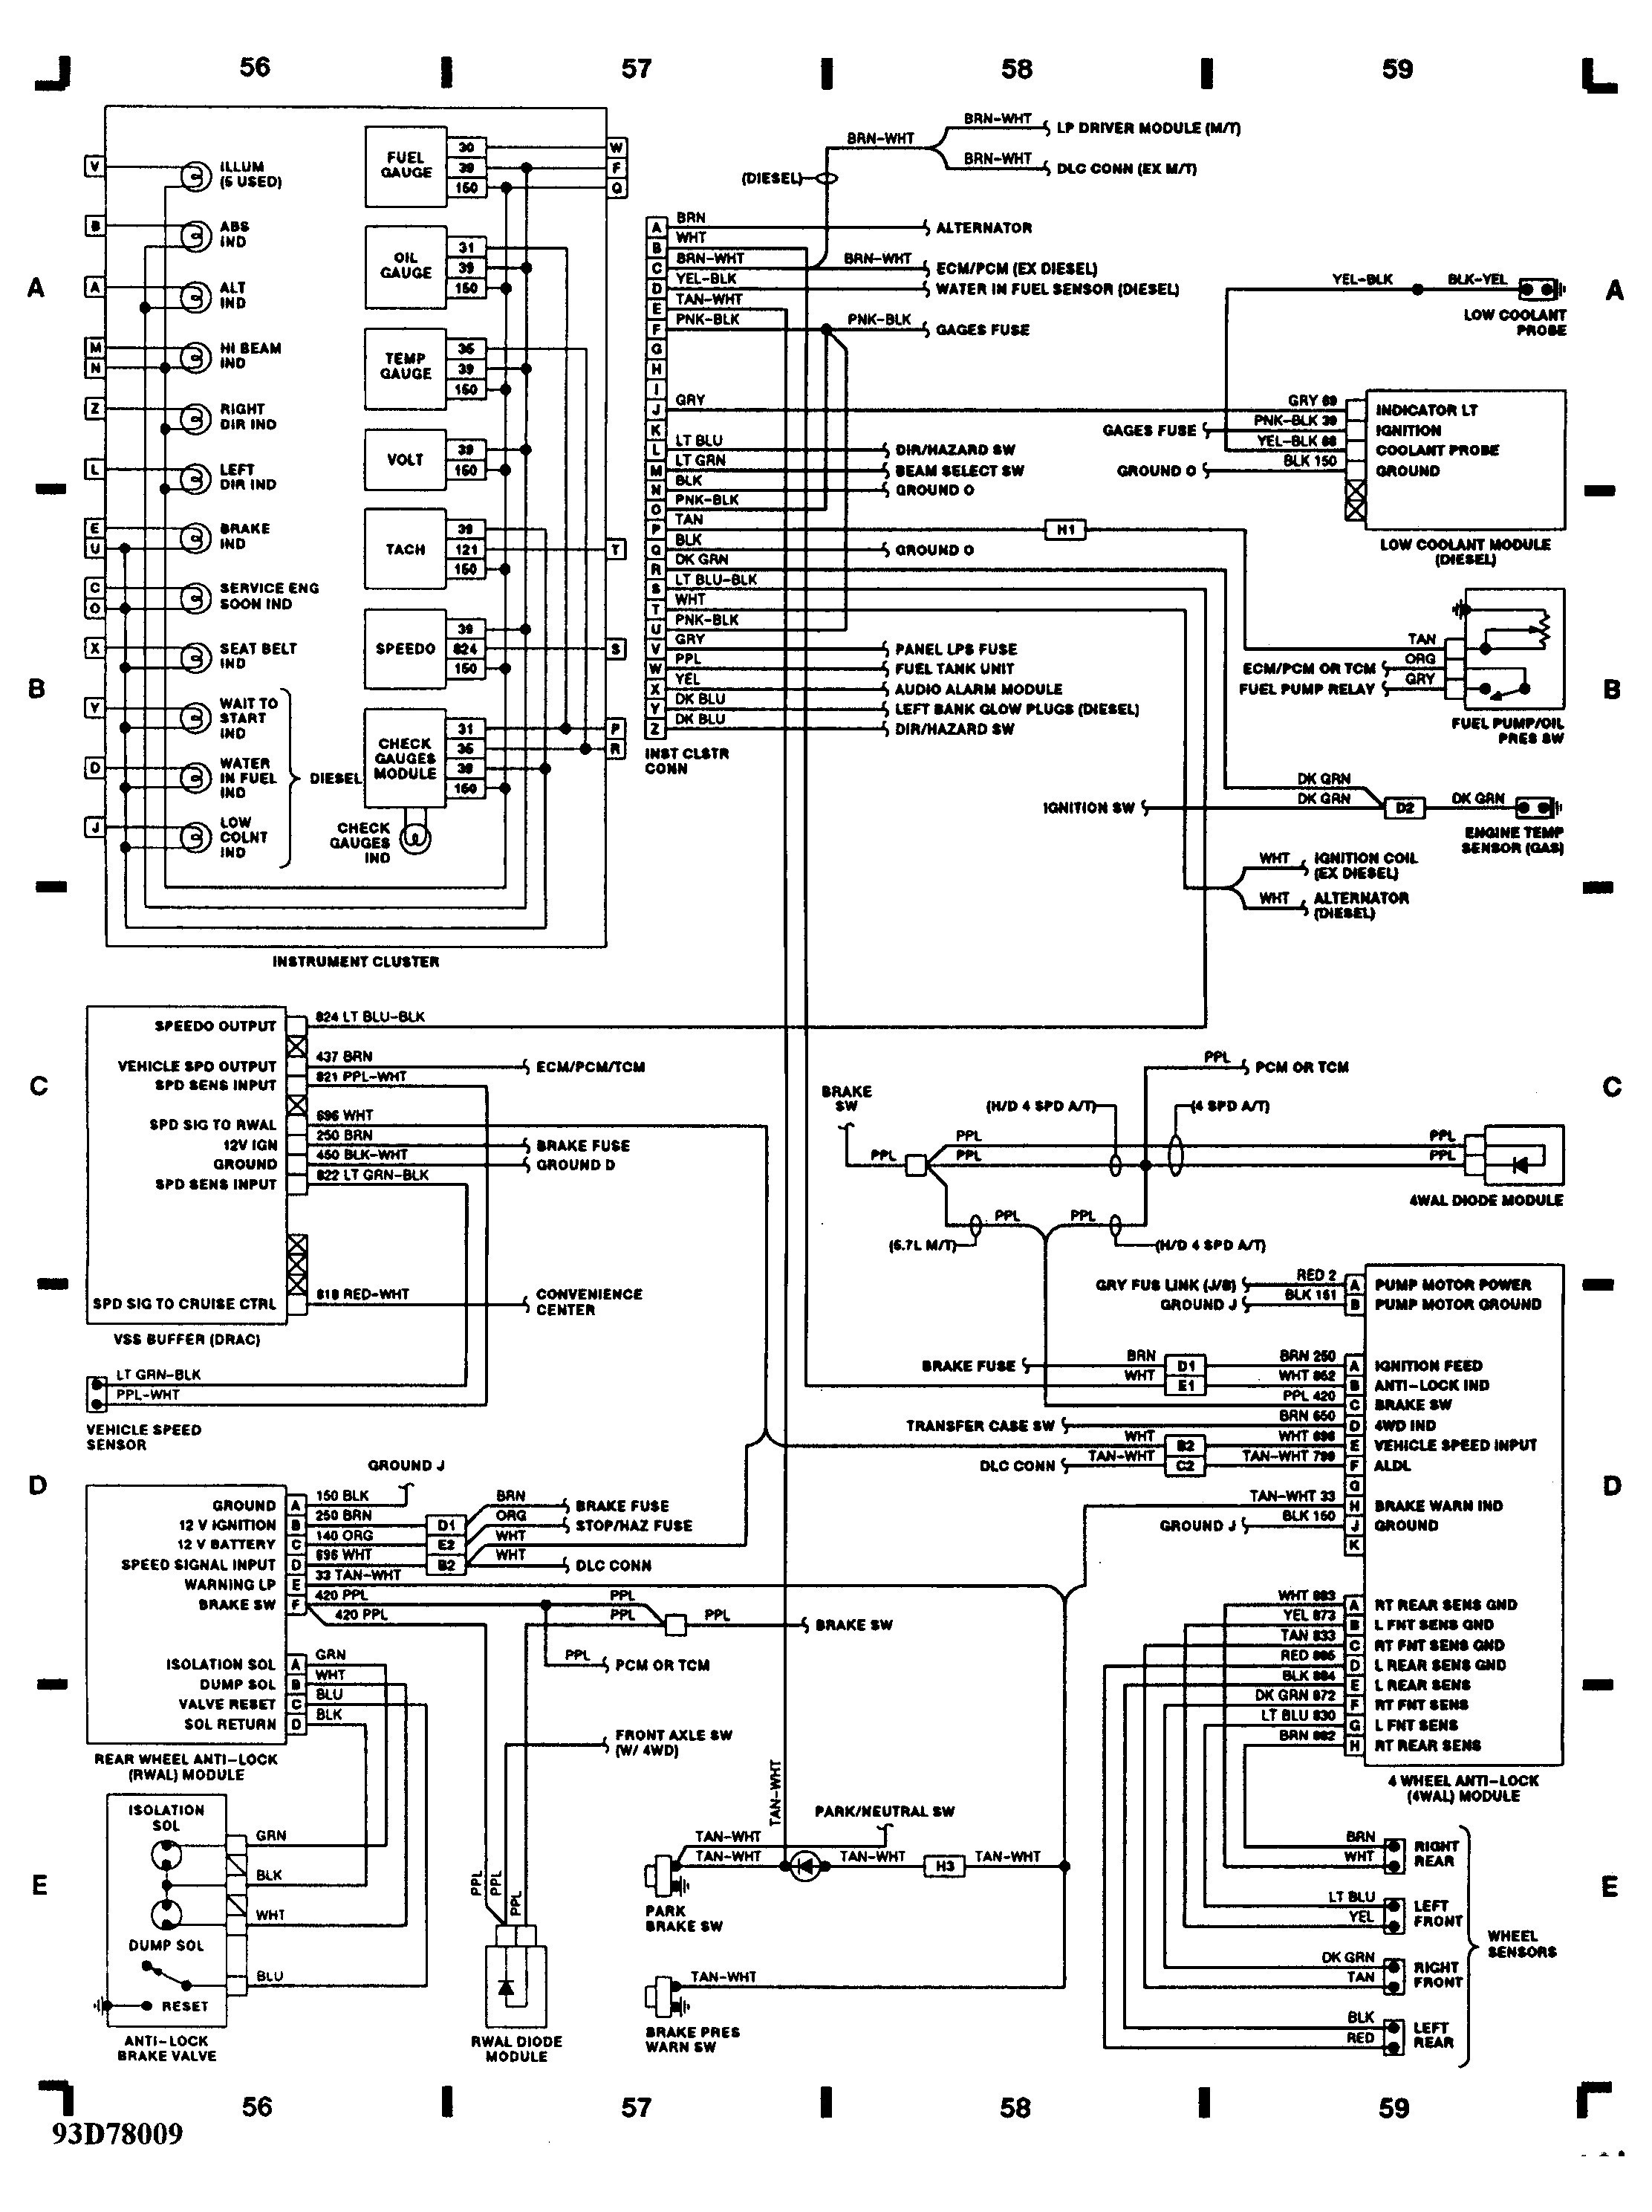 1990 toyota Pickup Engine Diagram 2002 Ls1 Engine Diagram Another Blog About Wiring Diagram • Of 1990 toyota Pickup Engine Diagram How to Your Trouble Codes On A 1994 toyota 4runner